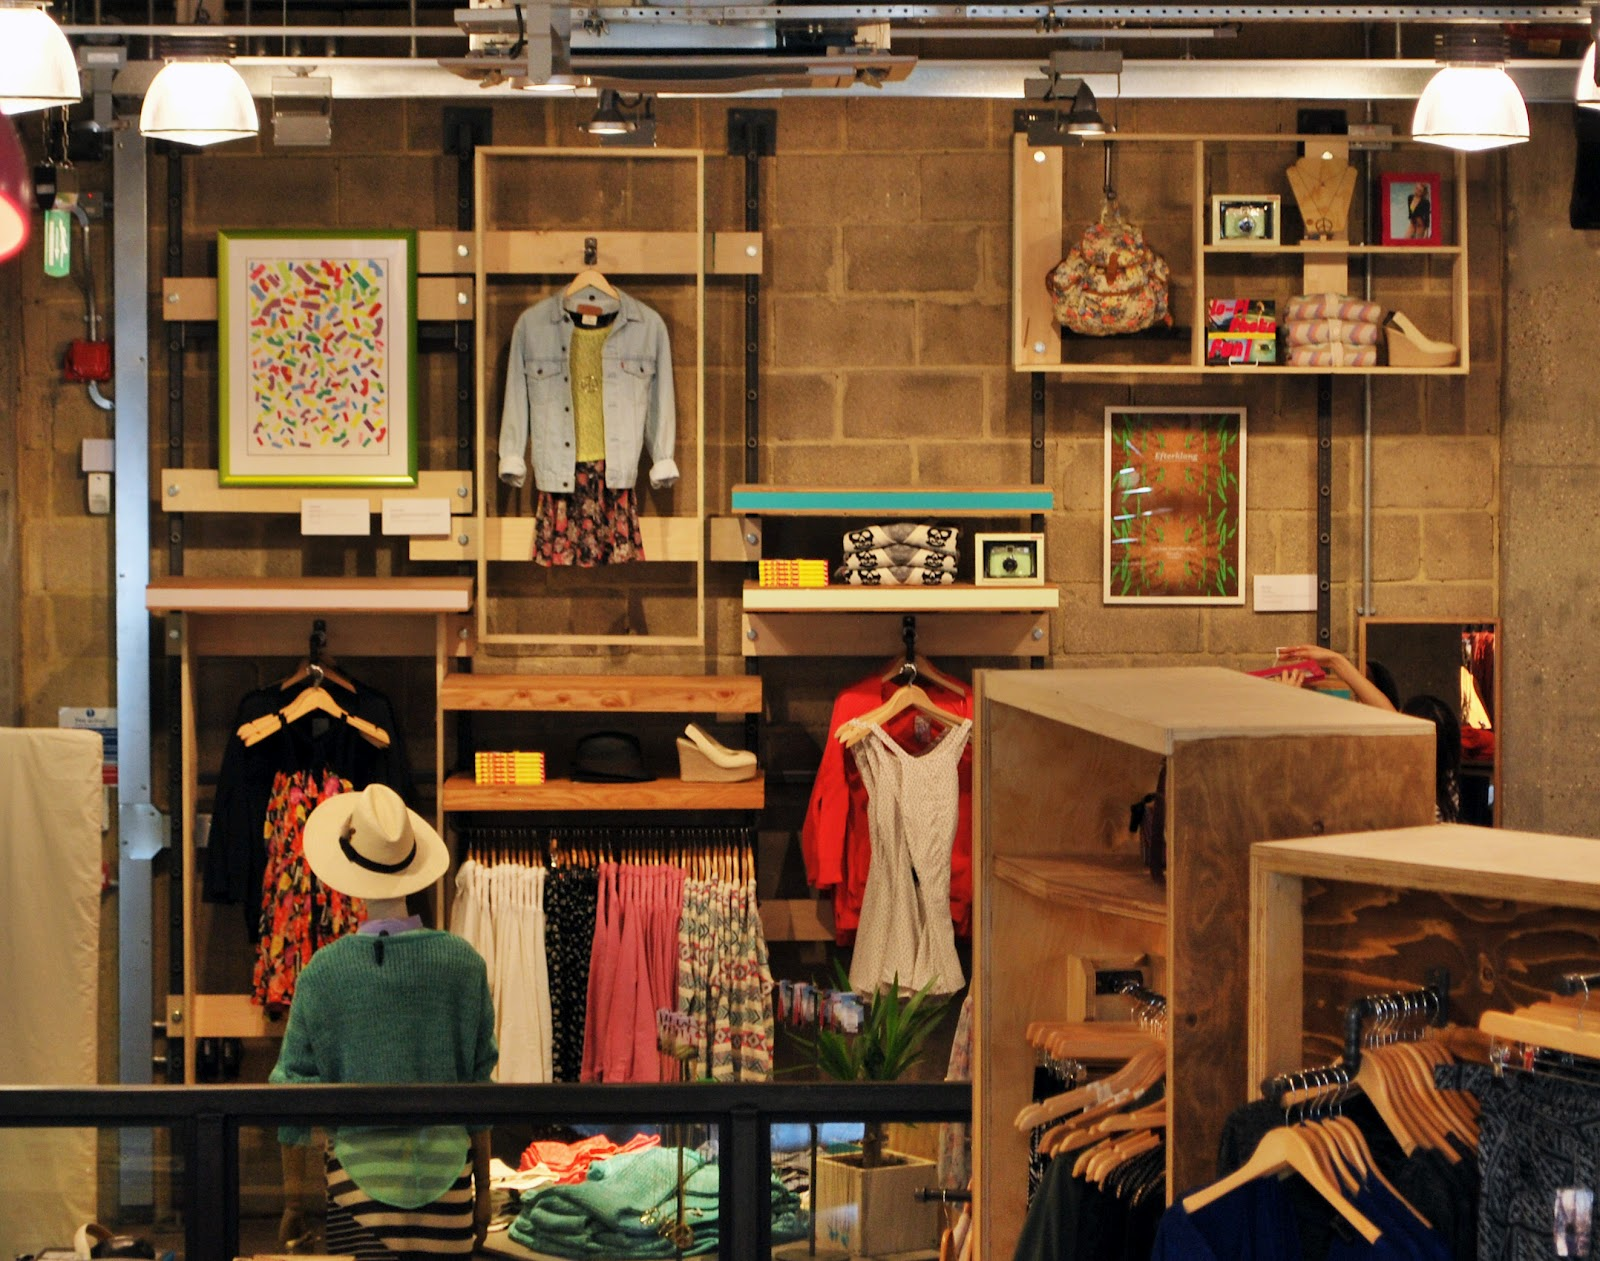 Tor sindall urban outfitters for Urban style interior design